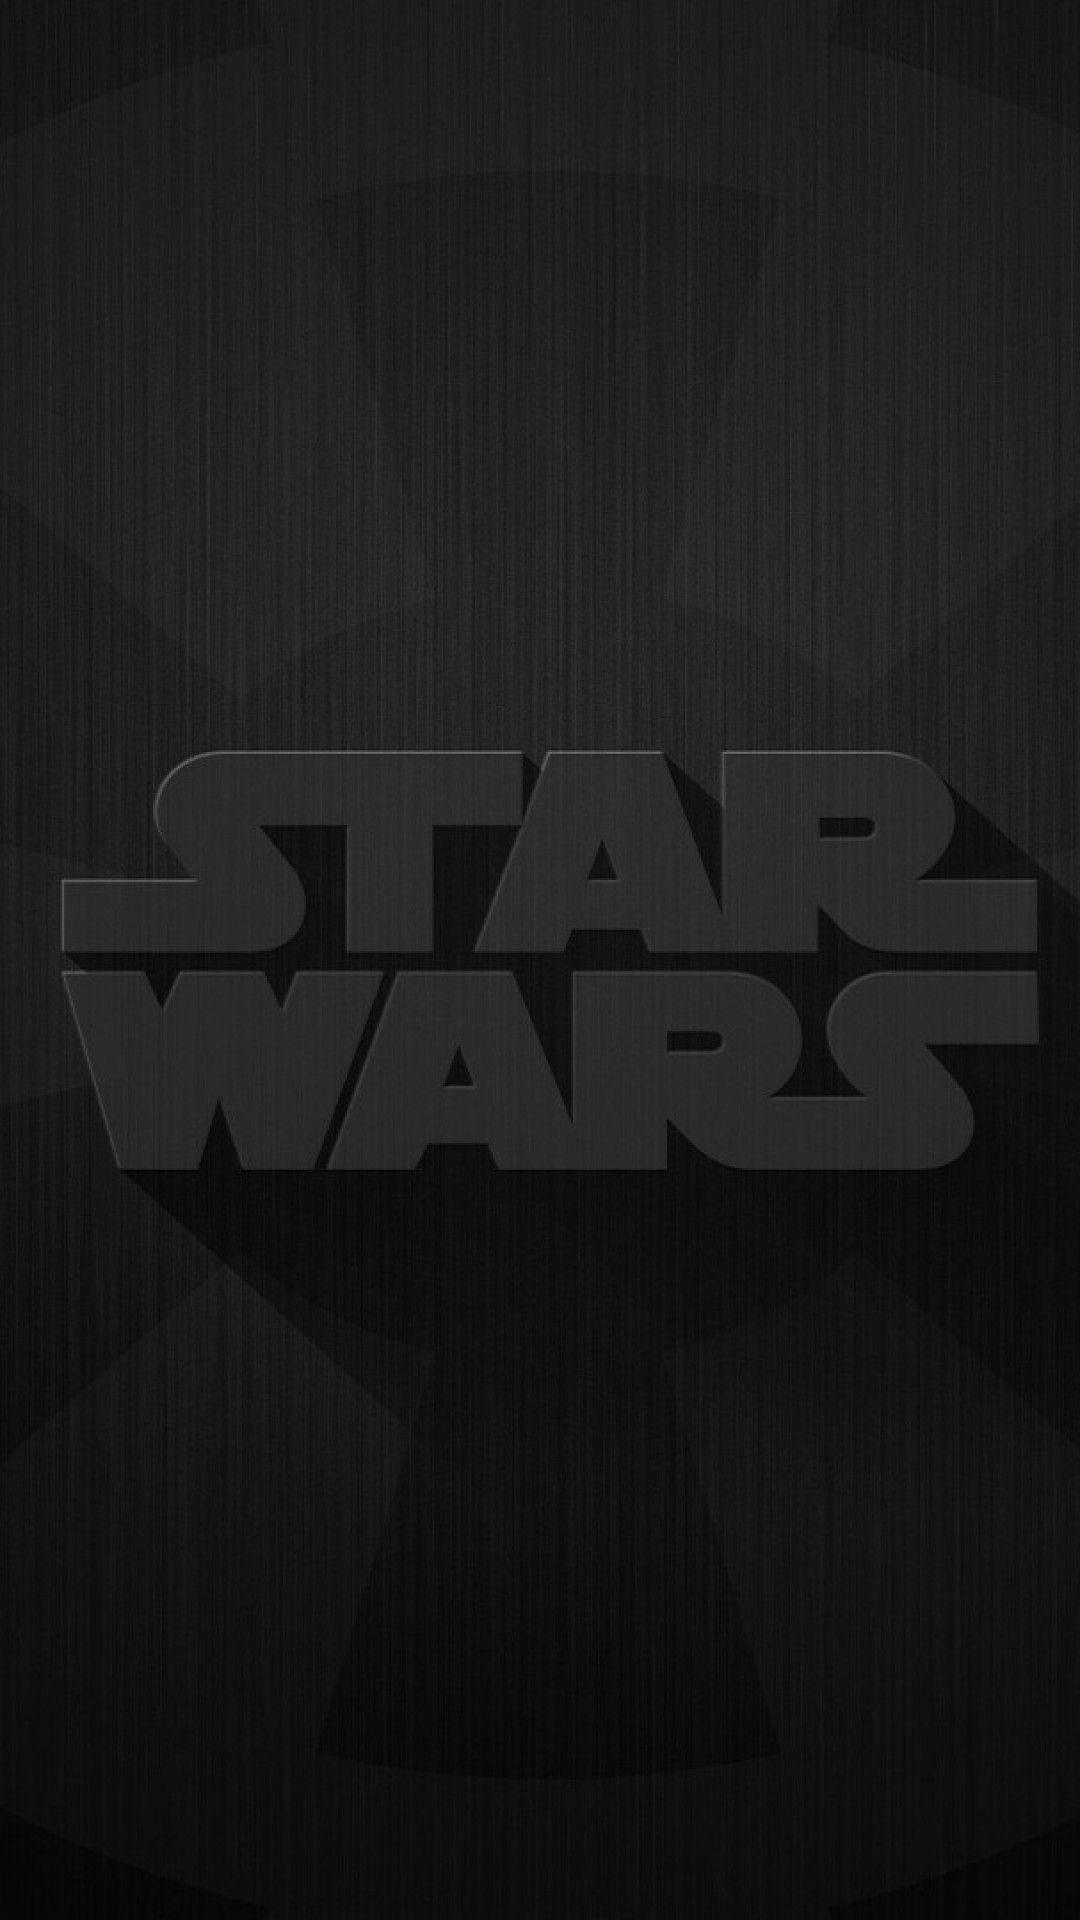 Star Wars Black Wallpapers Top Free Star Wars Black Backgrounds Wallpaperaccess